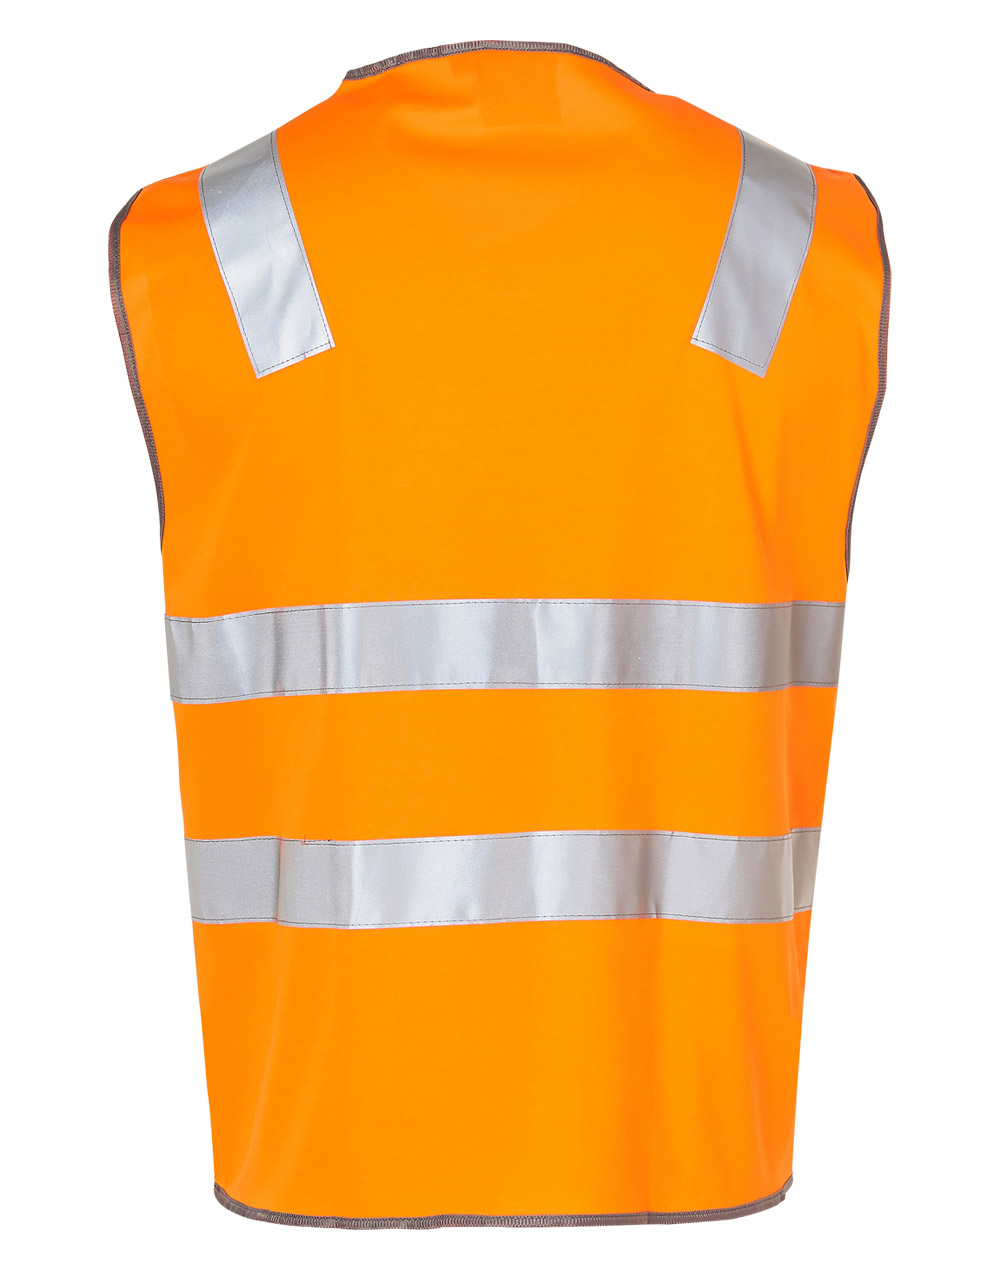 https://s3-ap-southeast-1.amazonaws.com/ws-imgs/WORKWEAR/SW03_Orange_Back.jpg